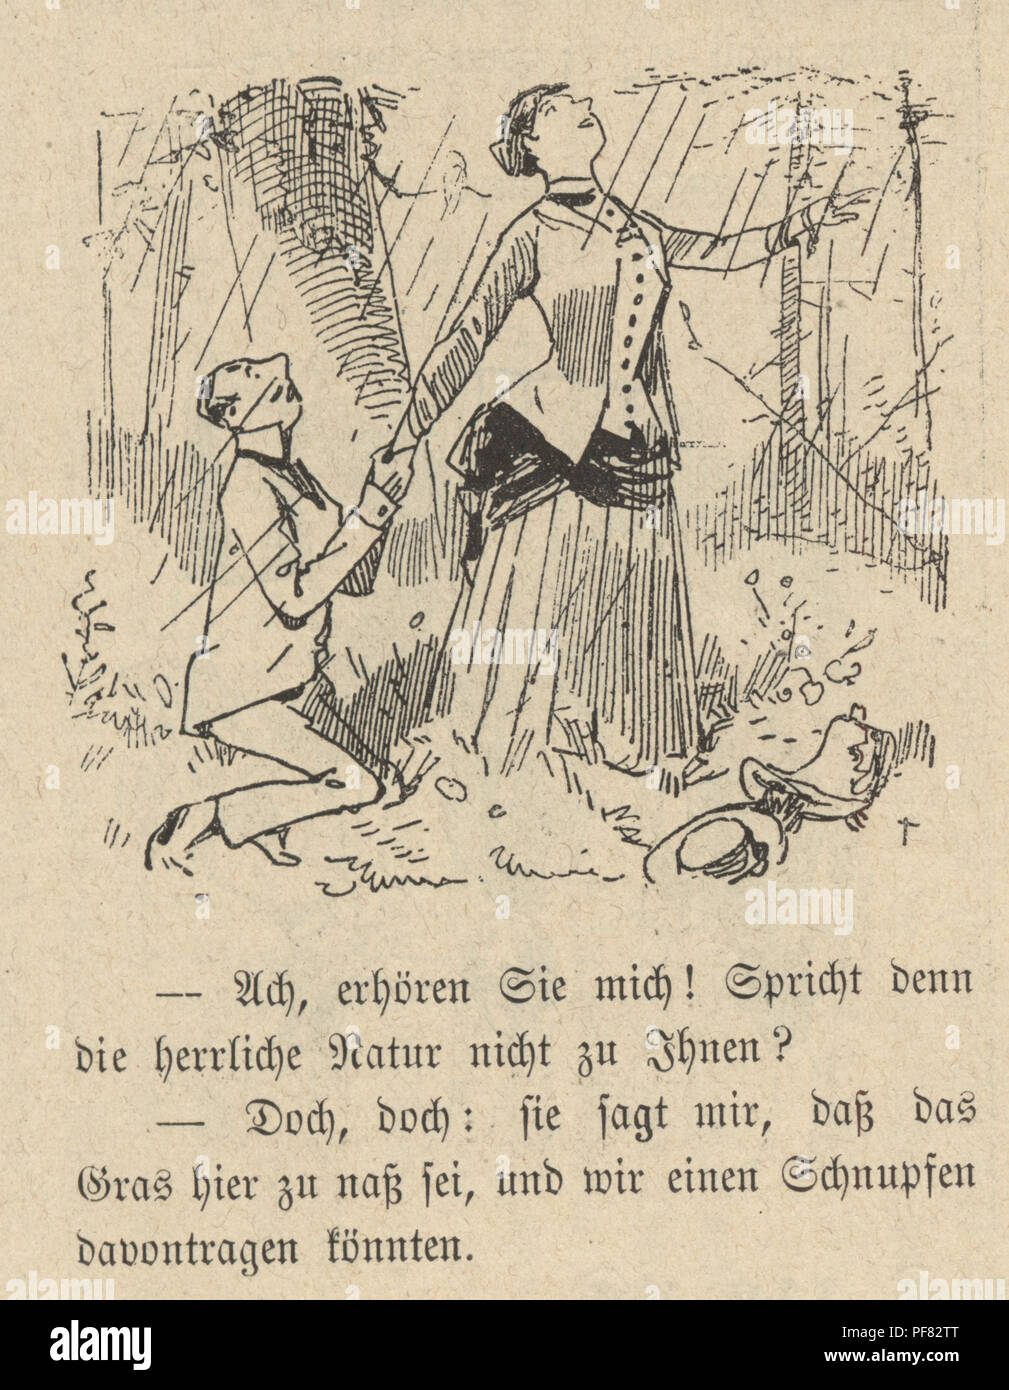 Vintage engraving of a Cartoon of a young couple with man on his knees, 1880s, German Stock Photo